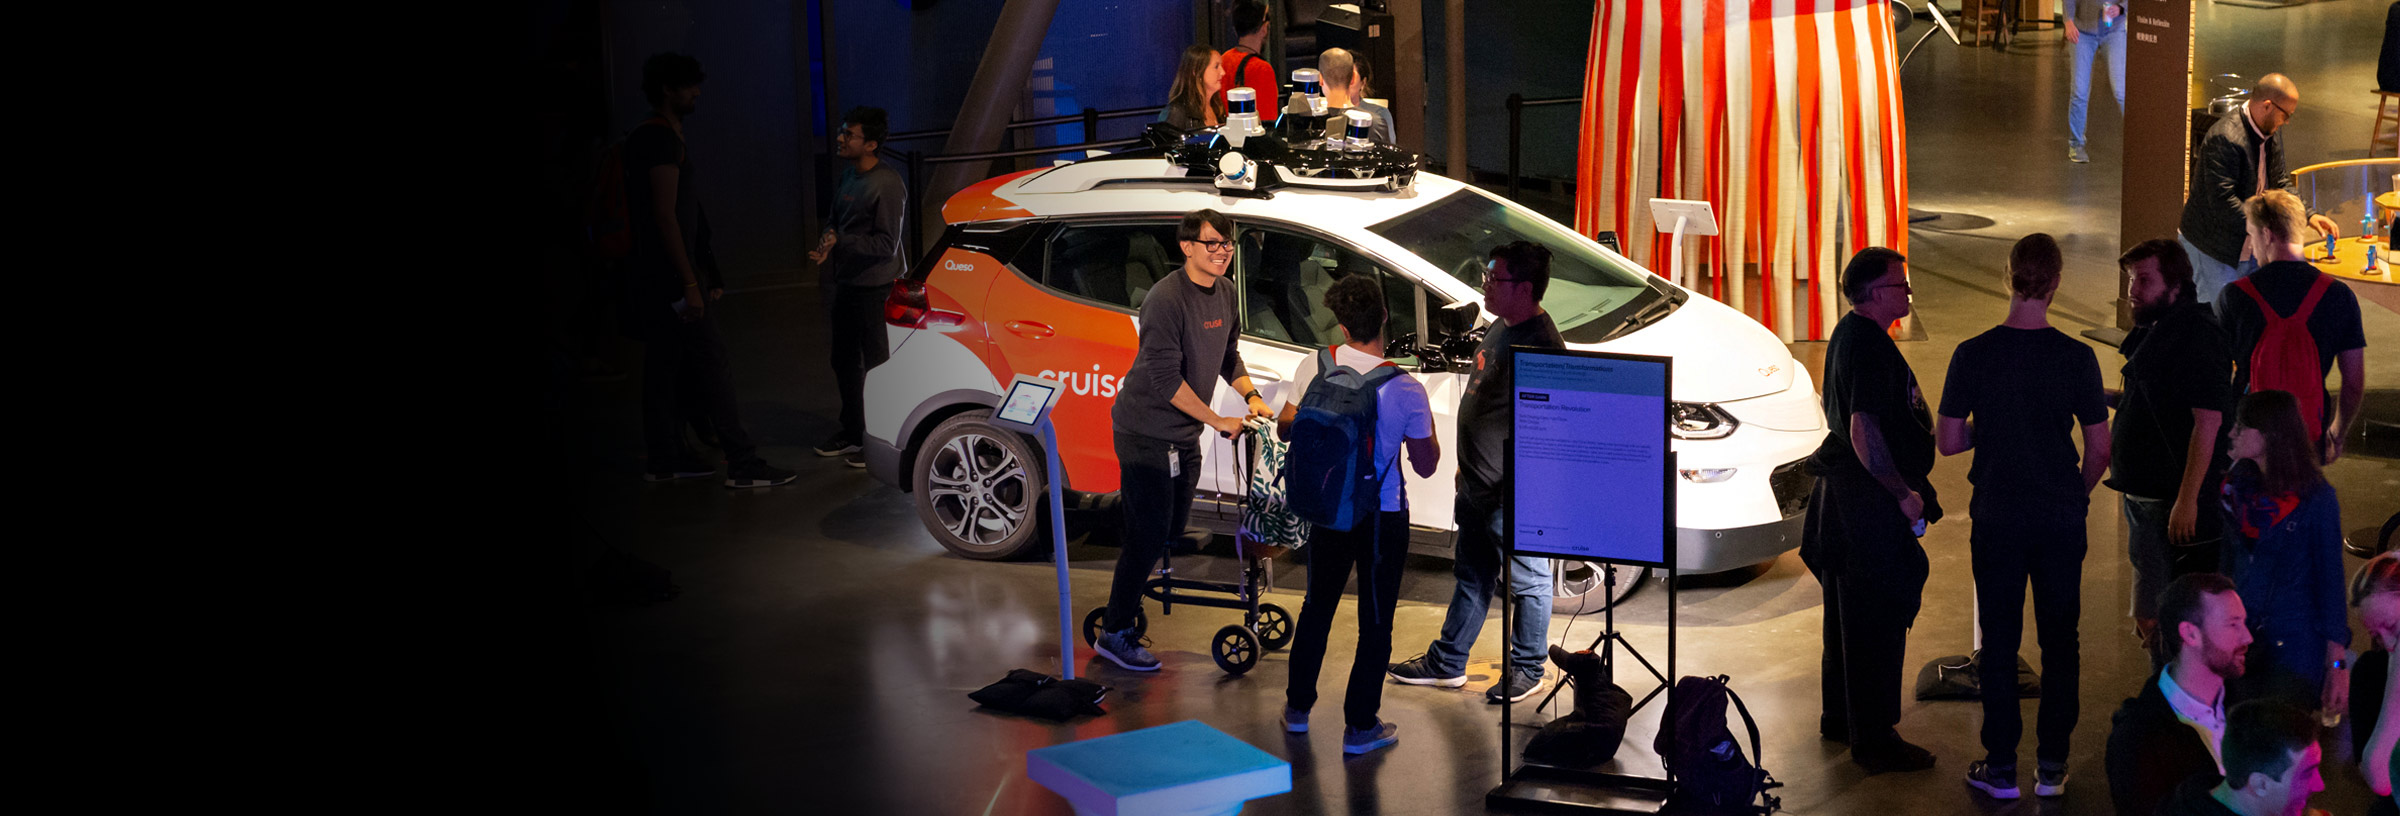 Visitors looking at a Cruise car inside the Exploratorium